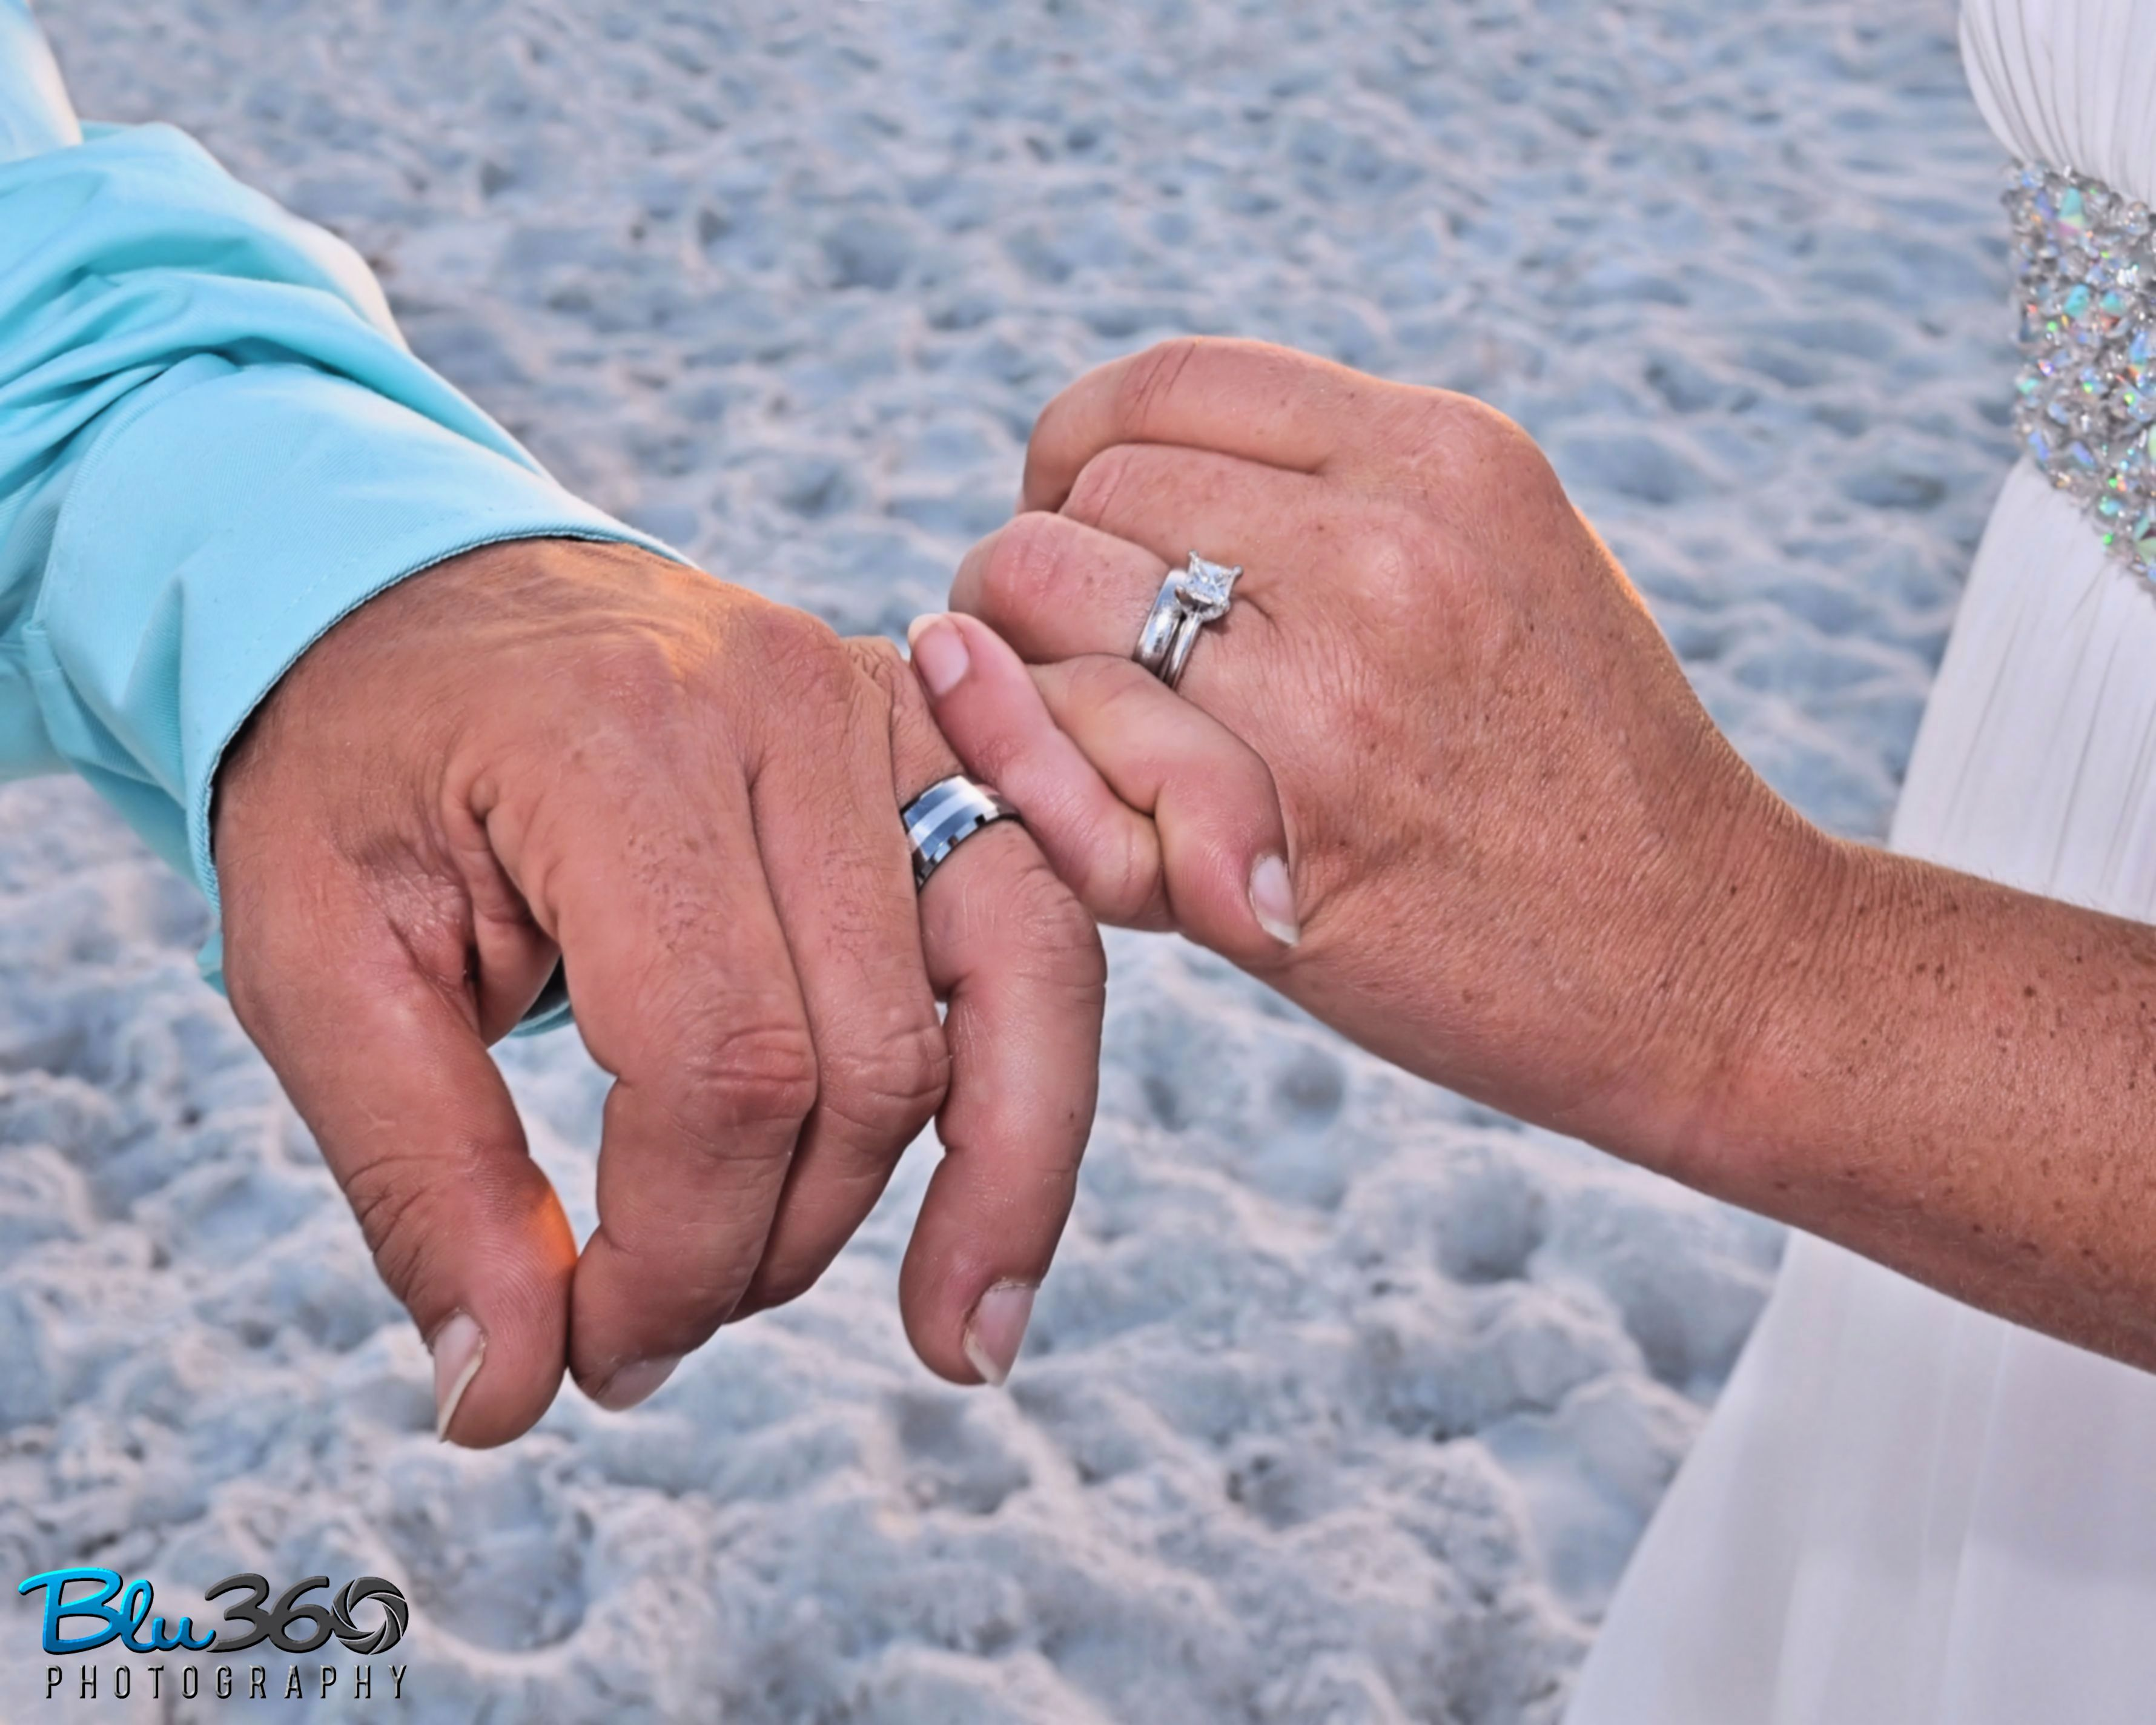 The wedding couple hands with rings Hands with rings